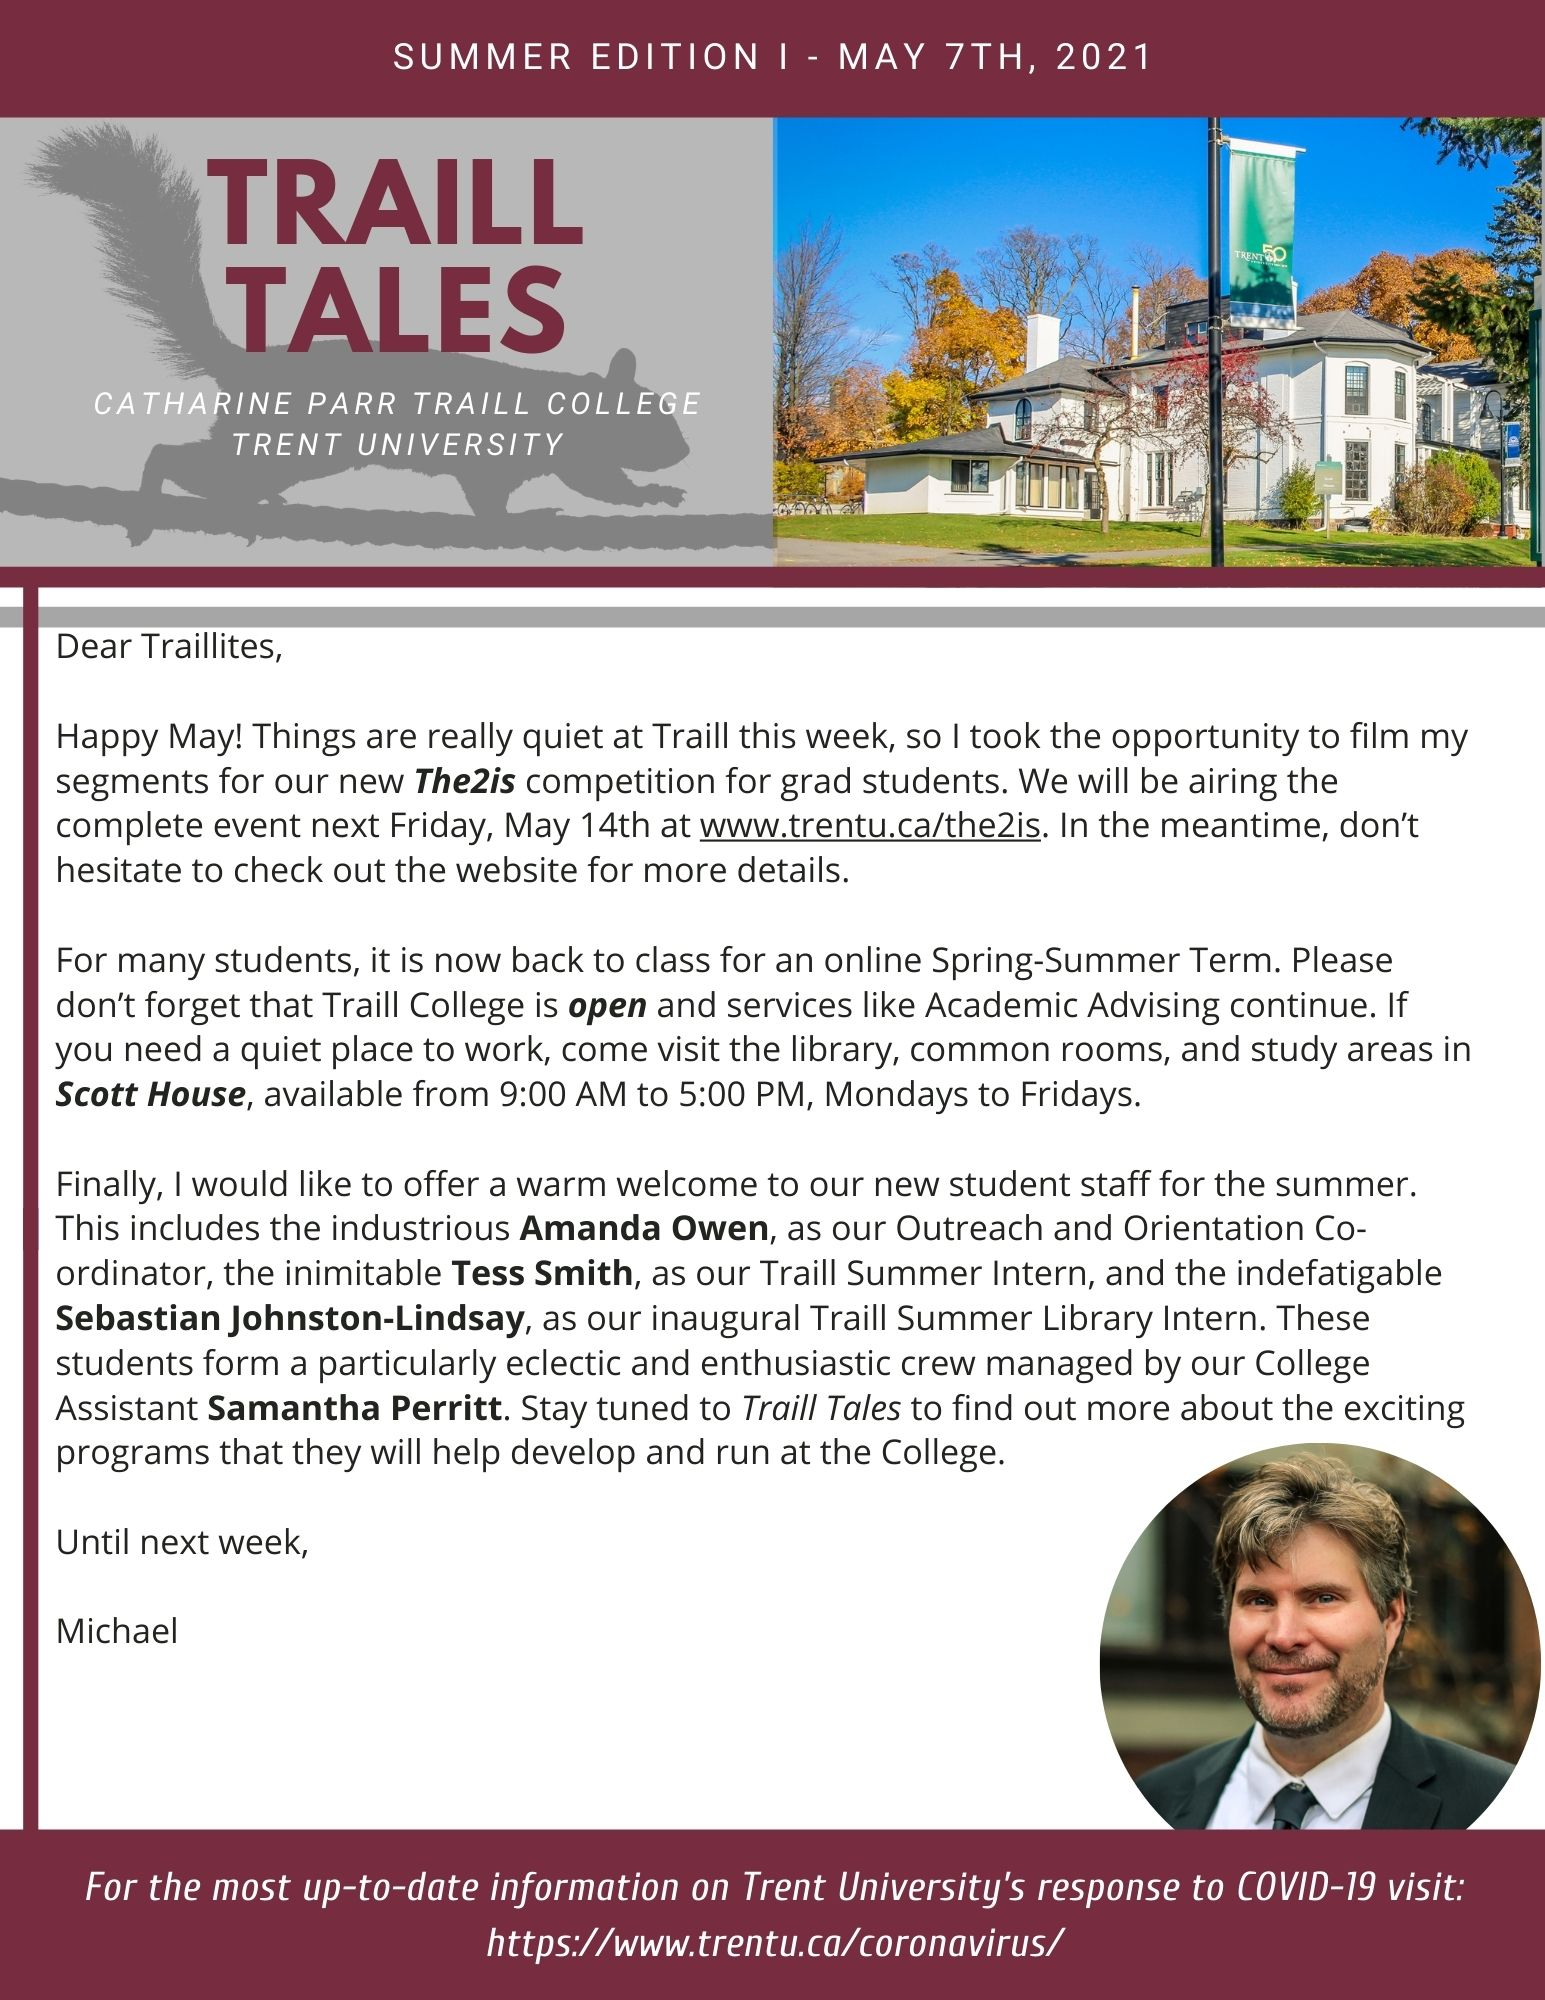 Traill Tales Newsletter: check out the link to the accessible version at the top of the page.